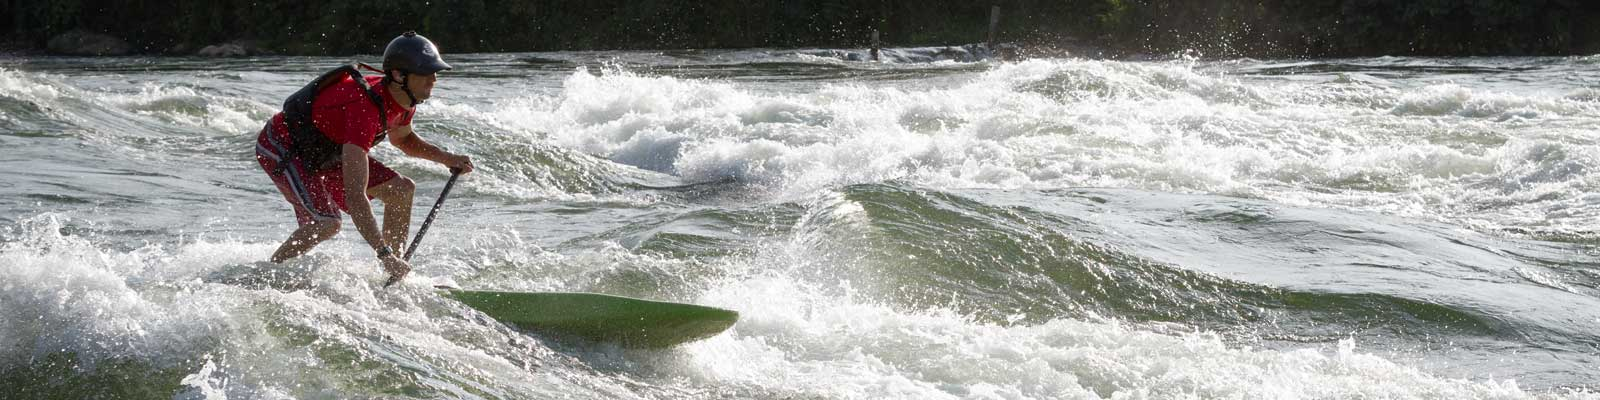 Stand up paddleboarding in the whitewater on the Nile